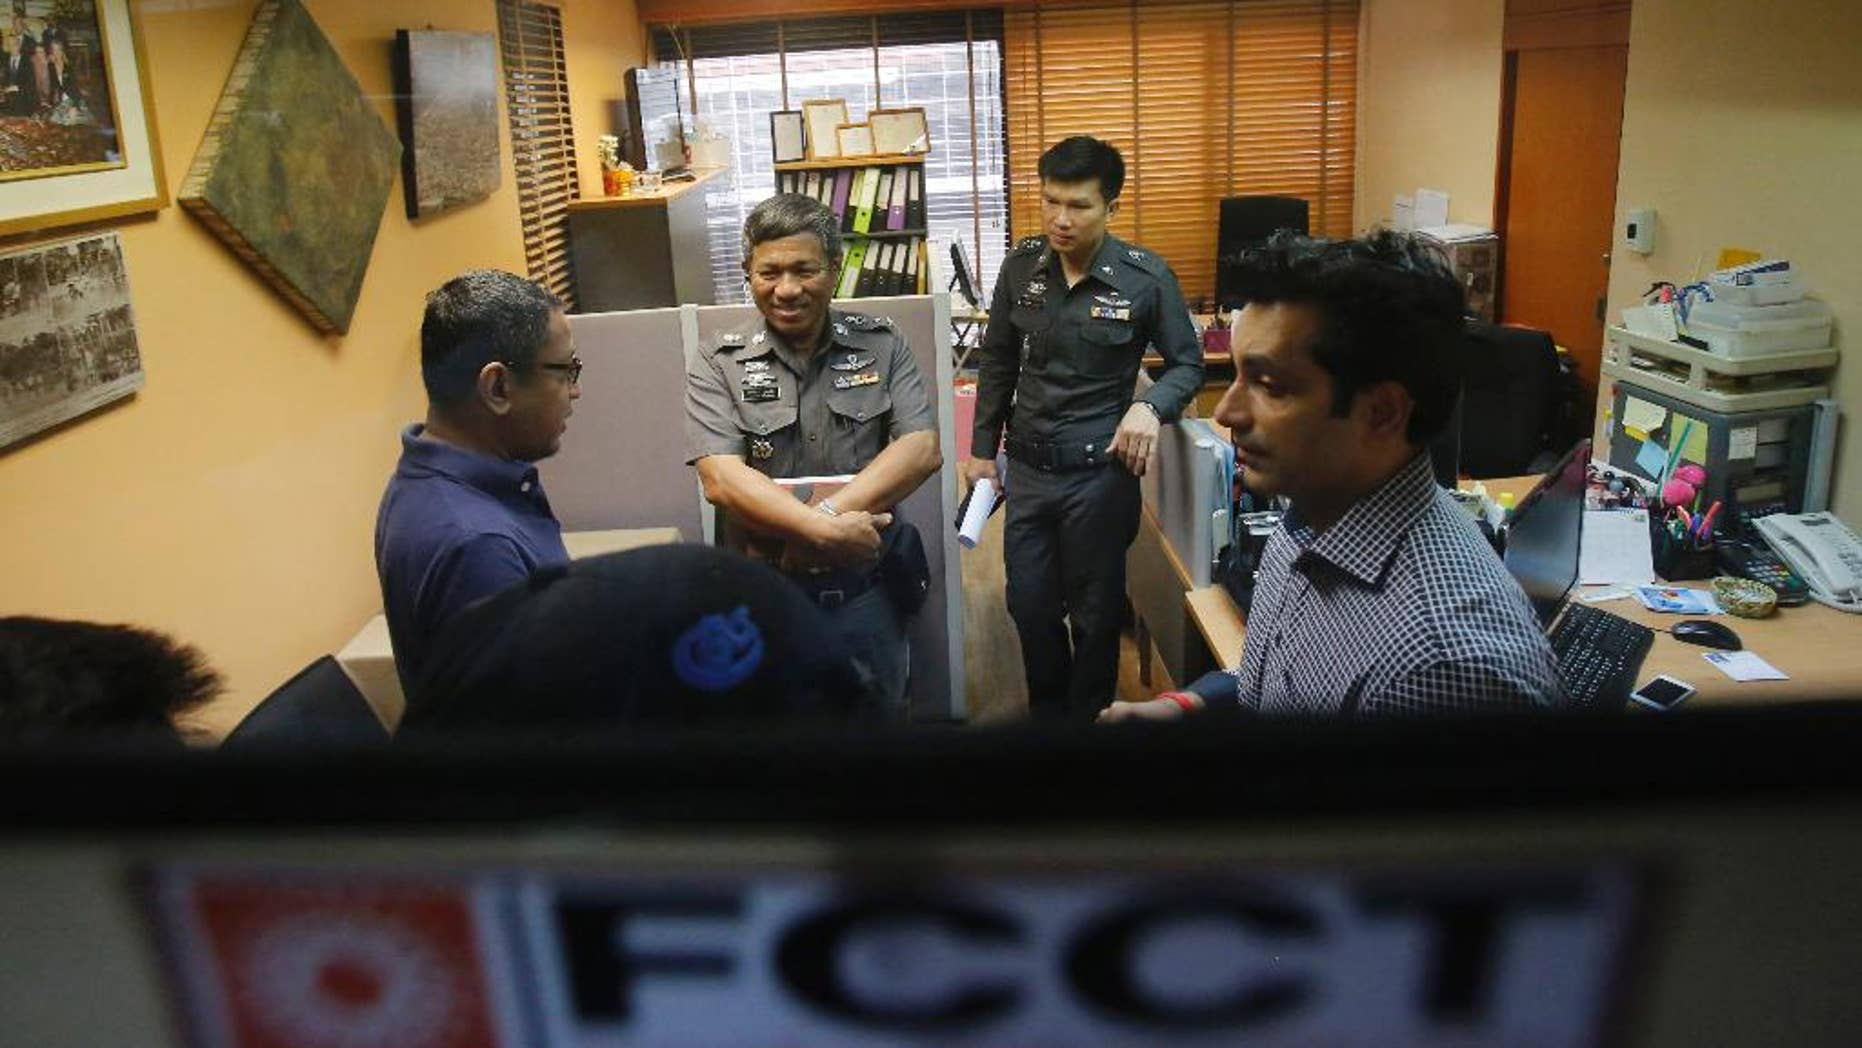 """Sunai Phasuk, left, Human Rights Watch's senior researcher in Asia, and Umesh Pandey, a board member of Foreign Correspondents of Thailand, right, talk to policemen at the Foreign Correspondents Club of Thailand in Bangkok, Thailand Friday, June 26, 2015. Thai authorities on Friday forced the human rights group to cancel the launch of its report on the Vietnamese government's persecution of an ethnic minority, citing it could affect national security and bilateral relations. Thai police said in a statement Friday the scheduled event at the club could """"have an impact on the country's security or could affect the friendship and cooperation between Thailand and Vietnam."""" (AP Photo/Sakchai Lalit)"""